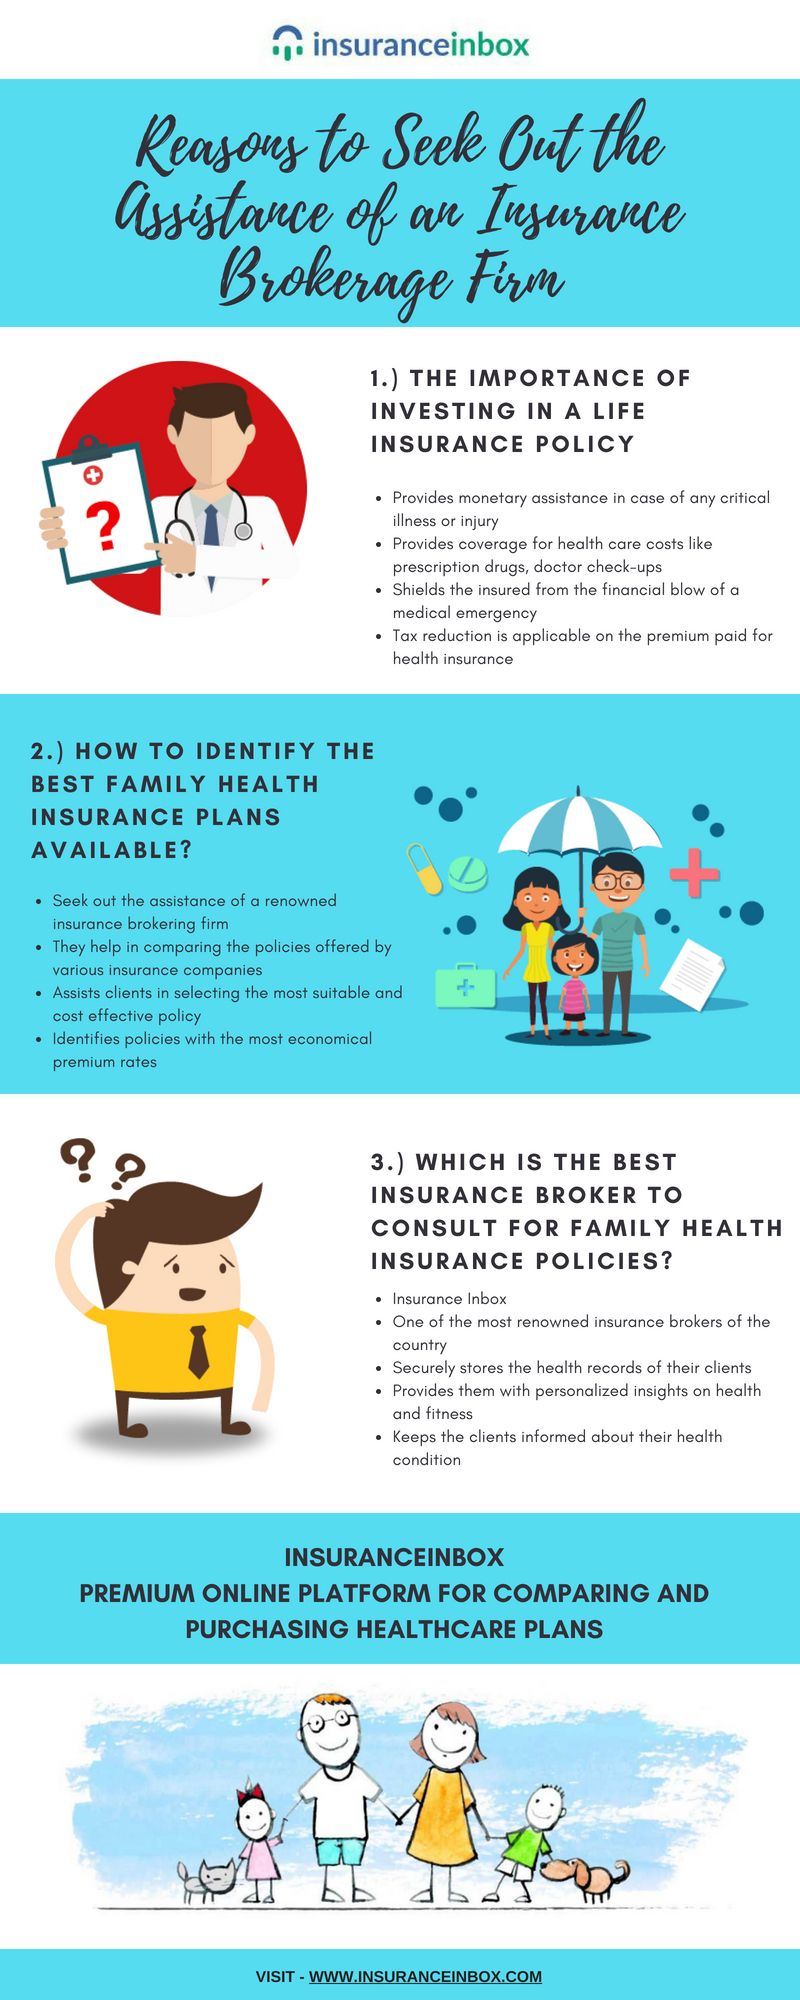 Reasons To Seek Out The Assistance Of An Insurance Brokerage Firm